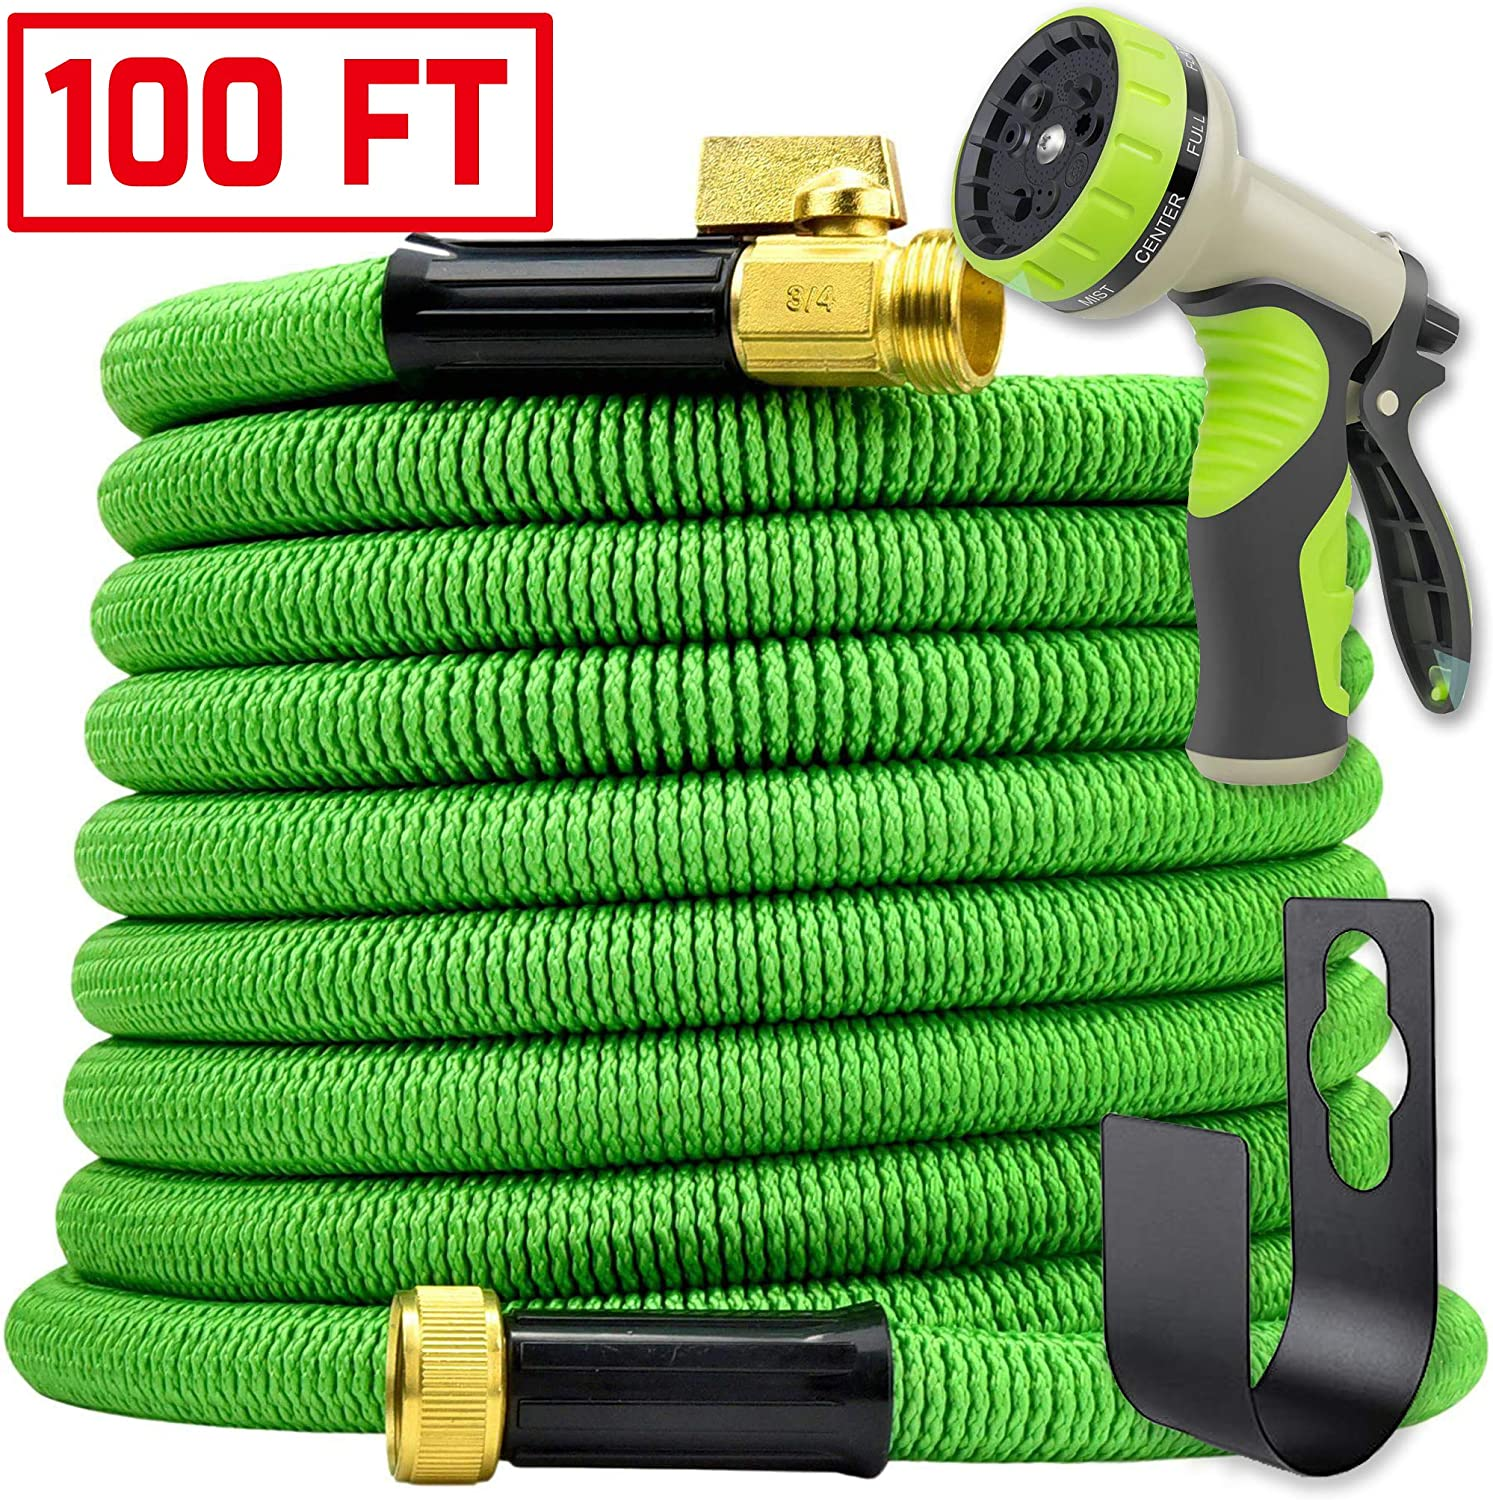 Water Hose 100ft Expandable w/Nozzle – Heavy Duty Flexible Leakproof Retracting Hose – 9-Pattern High-Pressure Water Spray Nozzle & Bag & Hanger – No Kink Tangle Free Water Hose (Green)